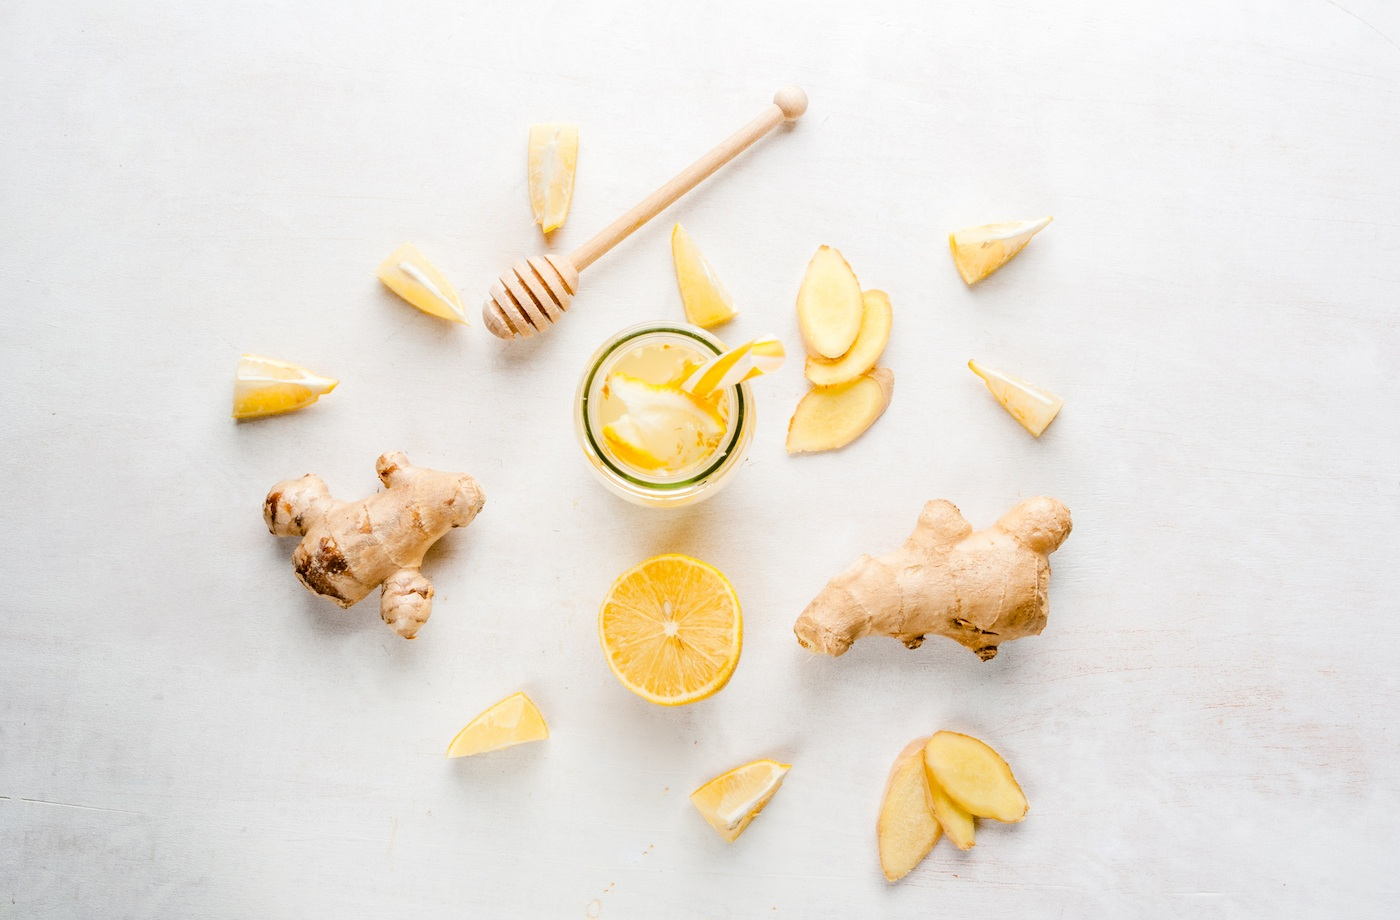 This 2-step trick will make cooking with ginger so much easier